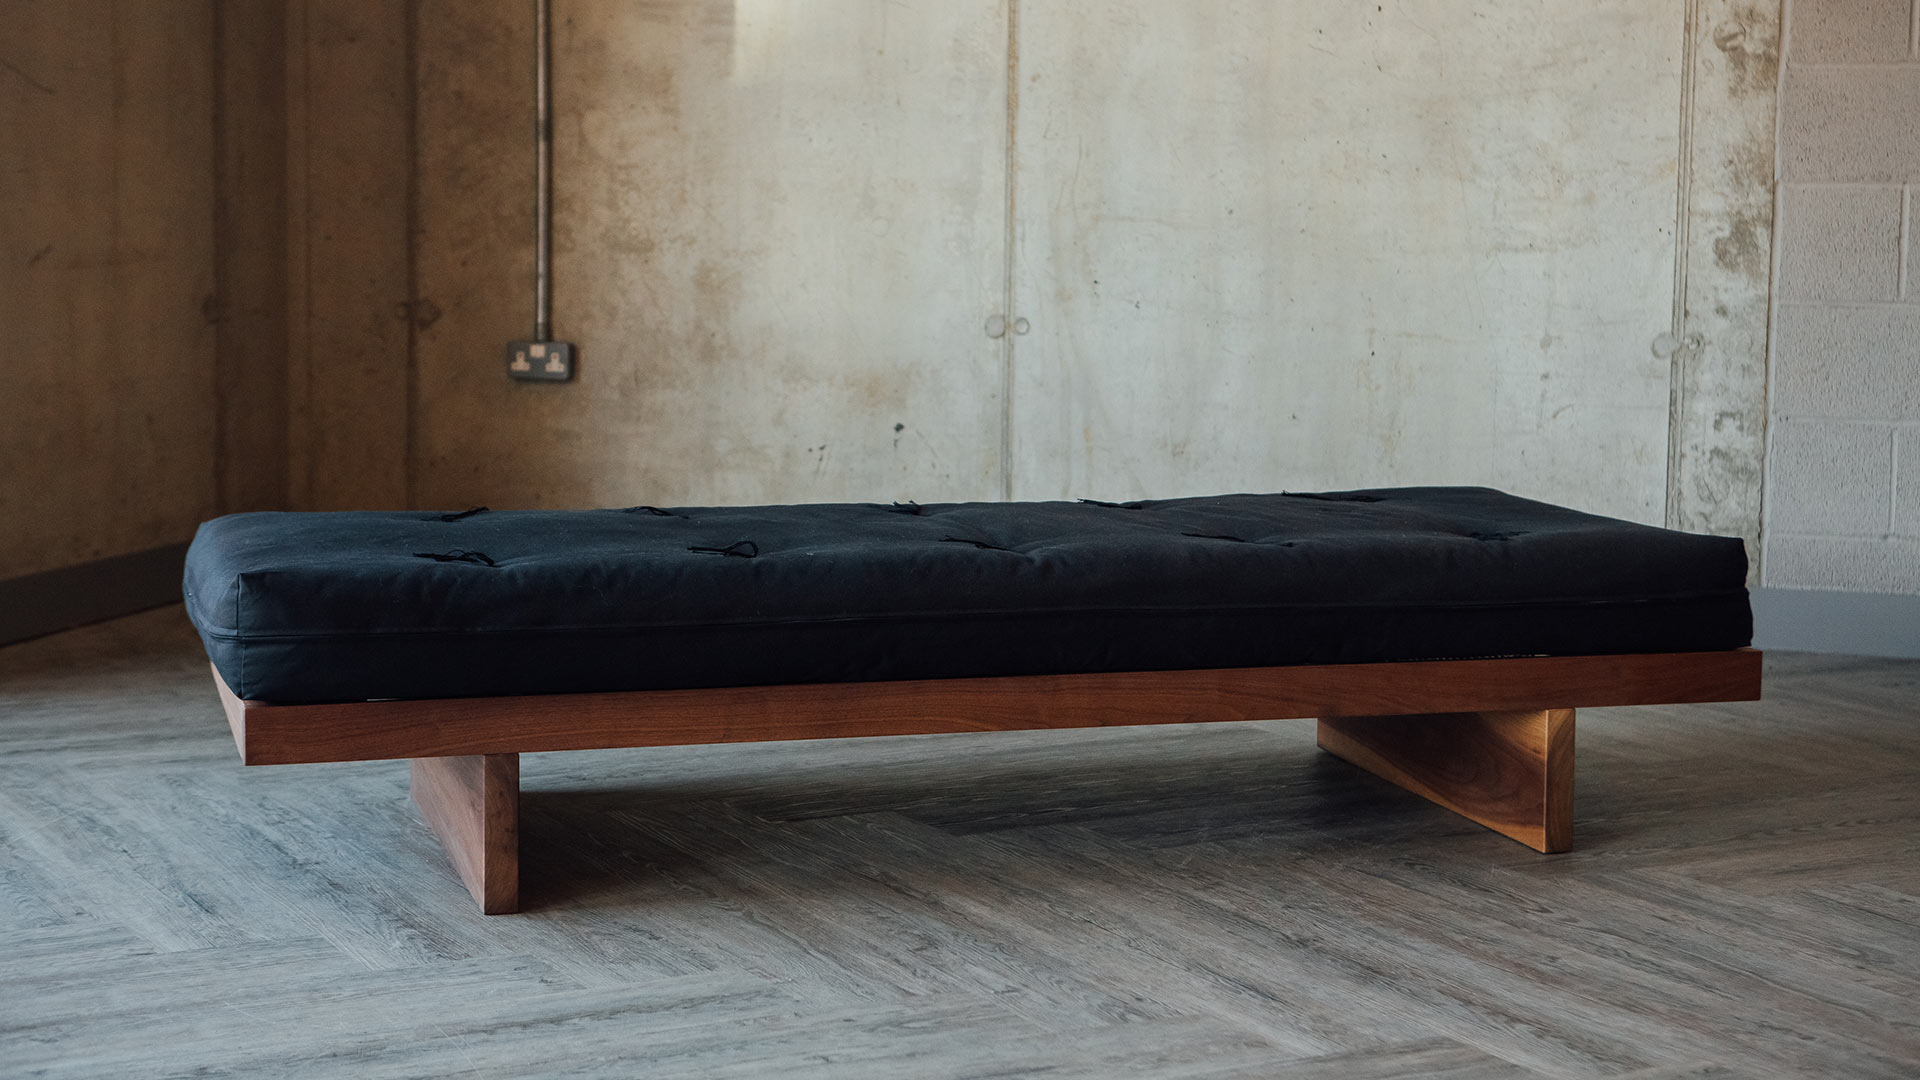 Kyoto futon day-bed - the solid wood frame is made to order in a choice of wood.